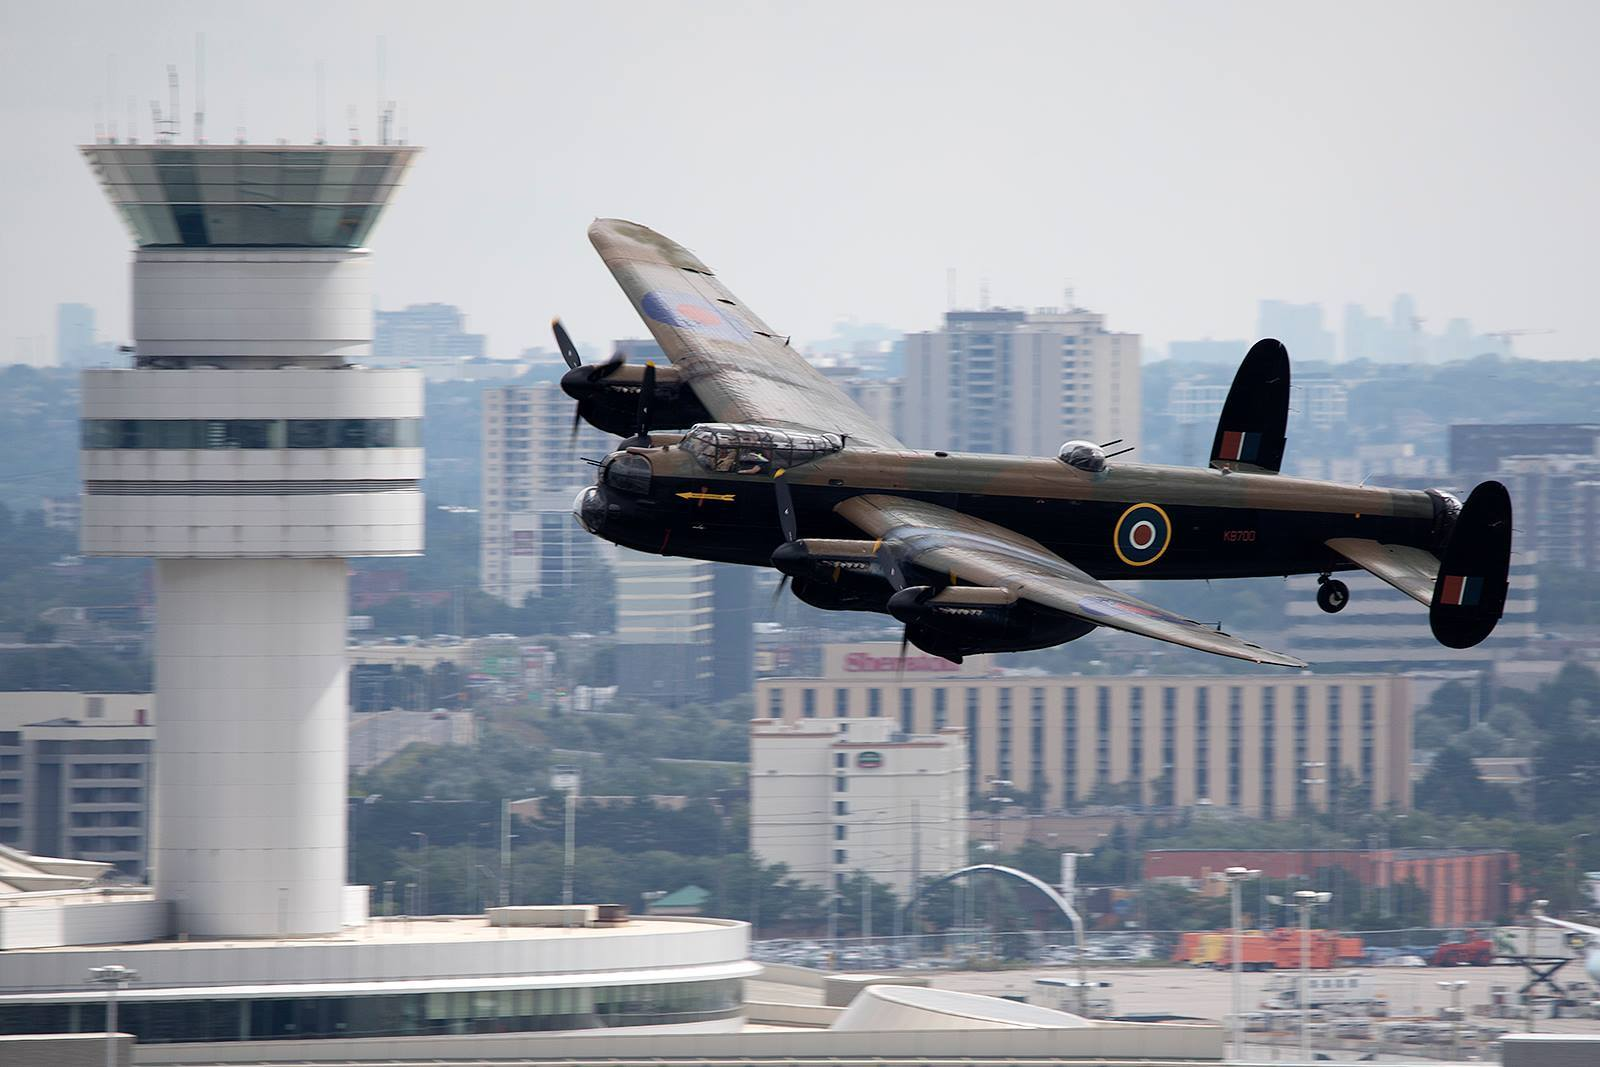 The Canadian Warplane Heritage Museum's Avro Lancaster bomber comes in for a low pass over Toronto Pearson International Airport. Photo submitted by David Brook